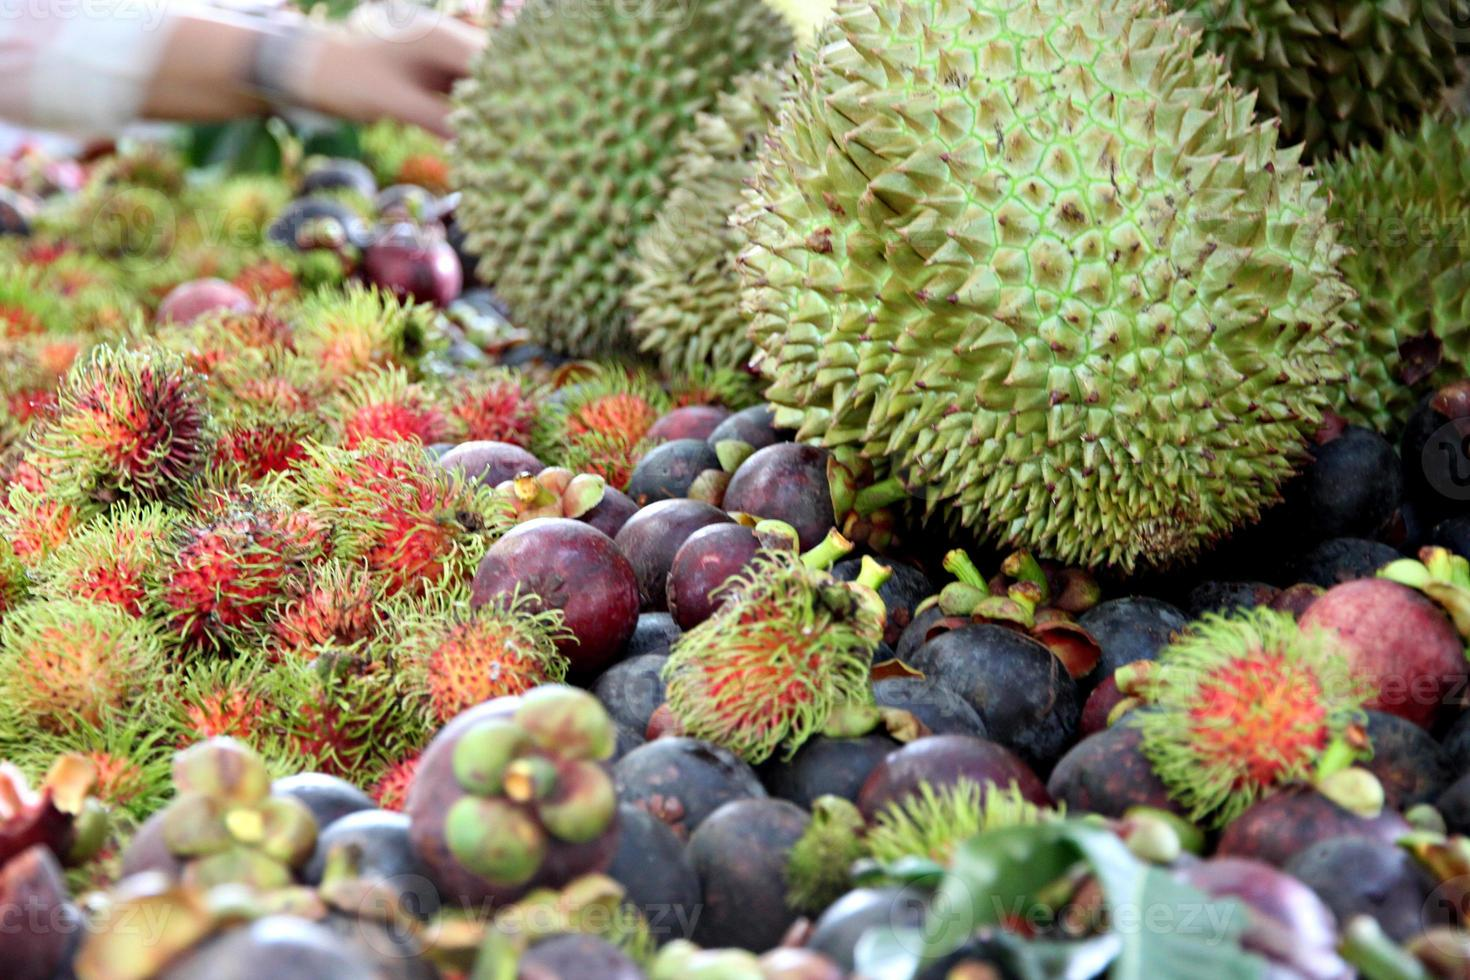 Many of fruits on the table. photo